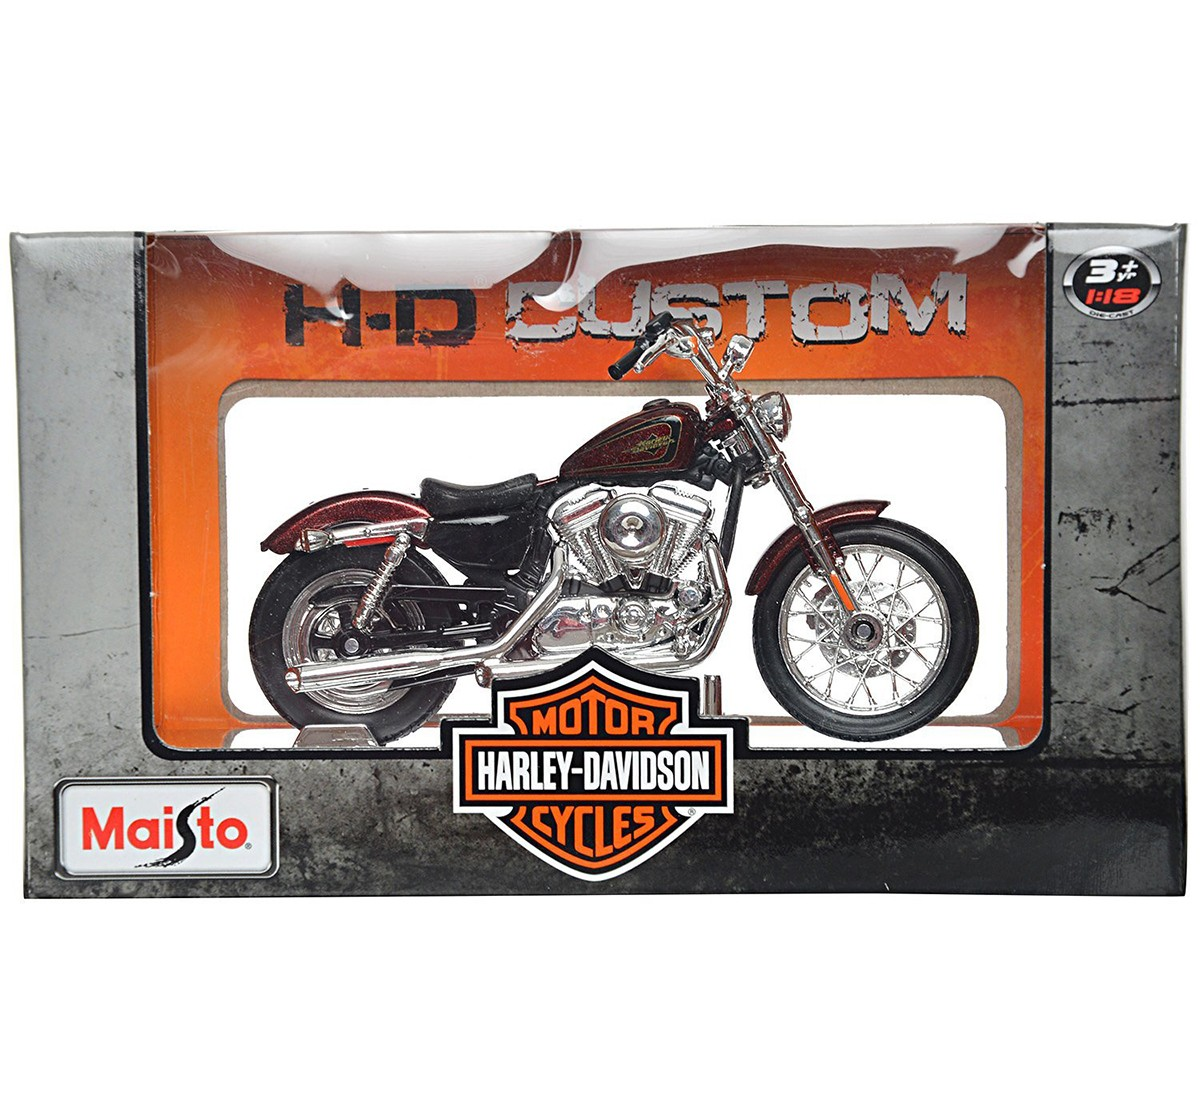 Maisto Harley Davidson 2012 Xl 1200V 1:18 Die Cast Toy Motorcycle for Kids age 3Y+ (Red)